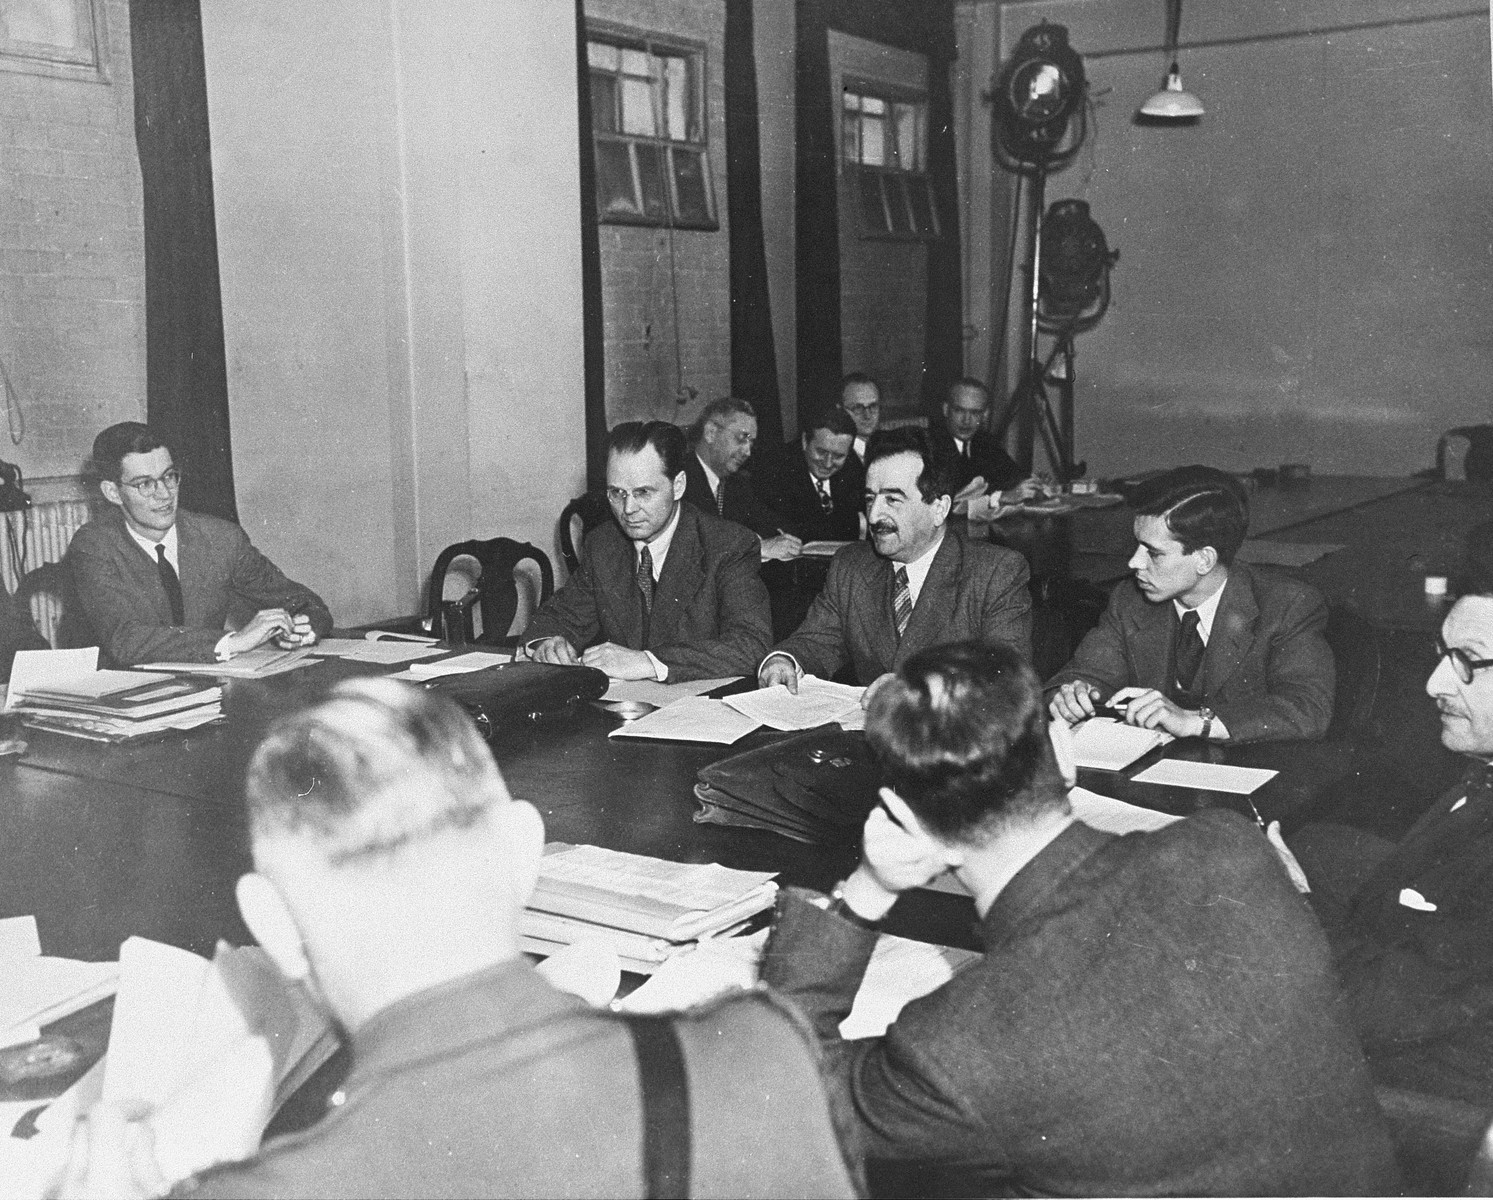 A.N. Trainin (center with mustache), head of the Soviet delegation to the War Crimes Executive Committee, speaks to his colleagues.    To his right sits I.T. Nikitchenko, who later represented the U.S.S.R. on the International Military Tribunal.  This body worked out the Allied agreement to create the International Military Tribunal to prosecute German war criminals at Nuremberg.